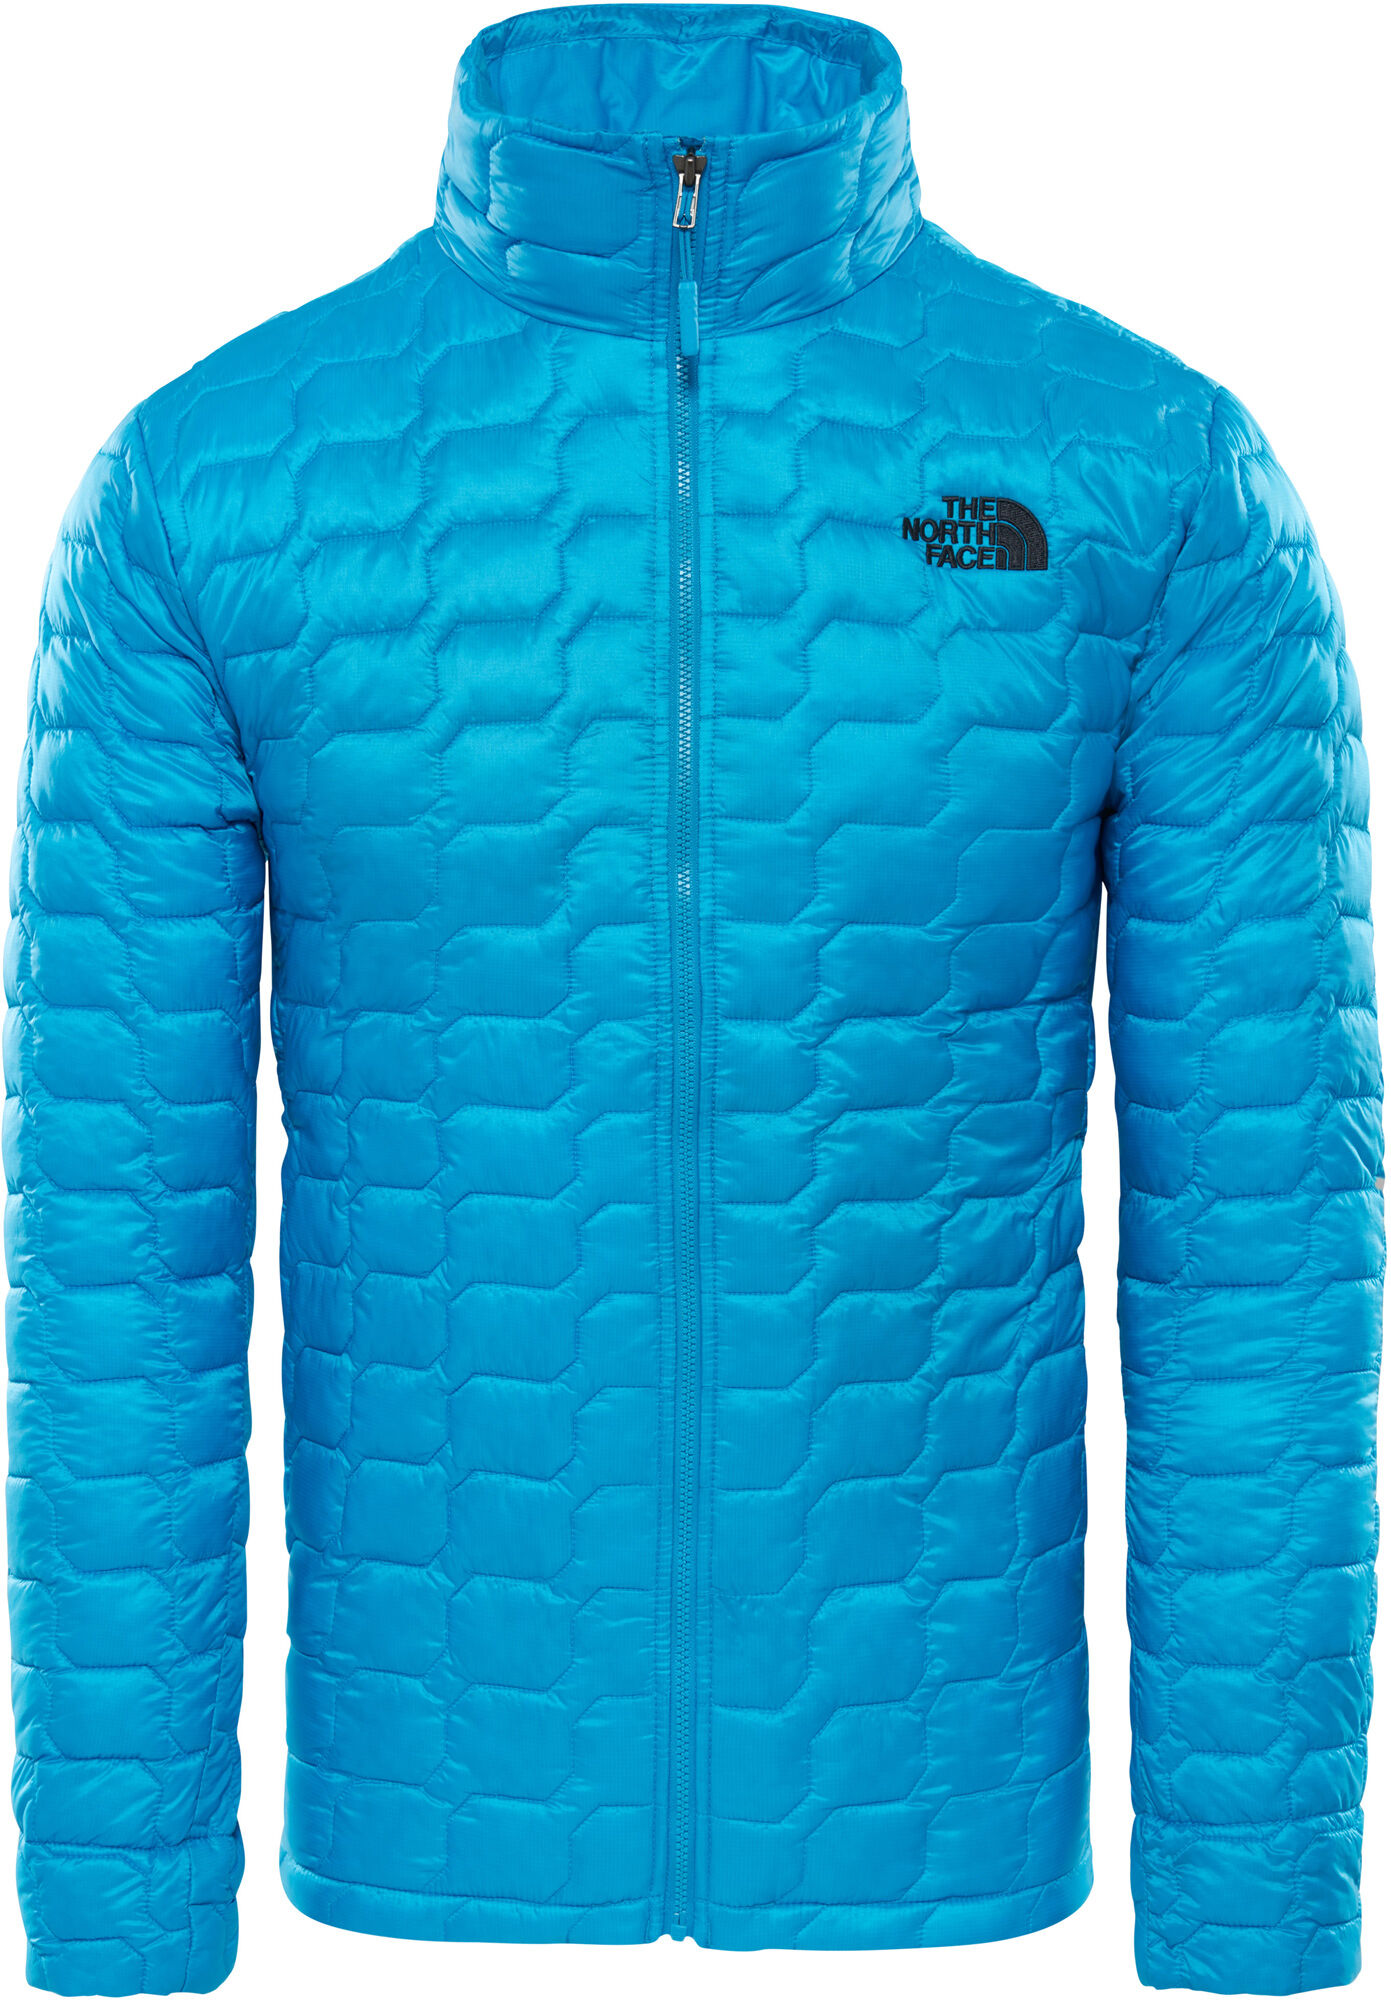 deportiva Hombre The Ropa Face North INTERSPORT xZnUqB